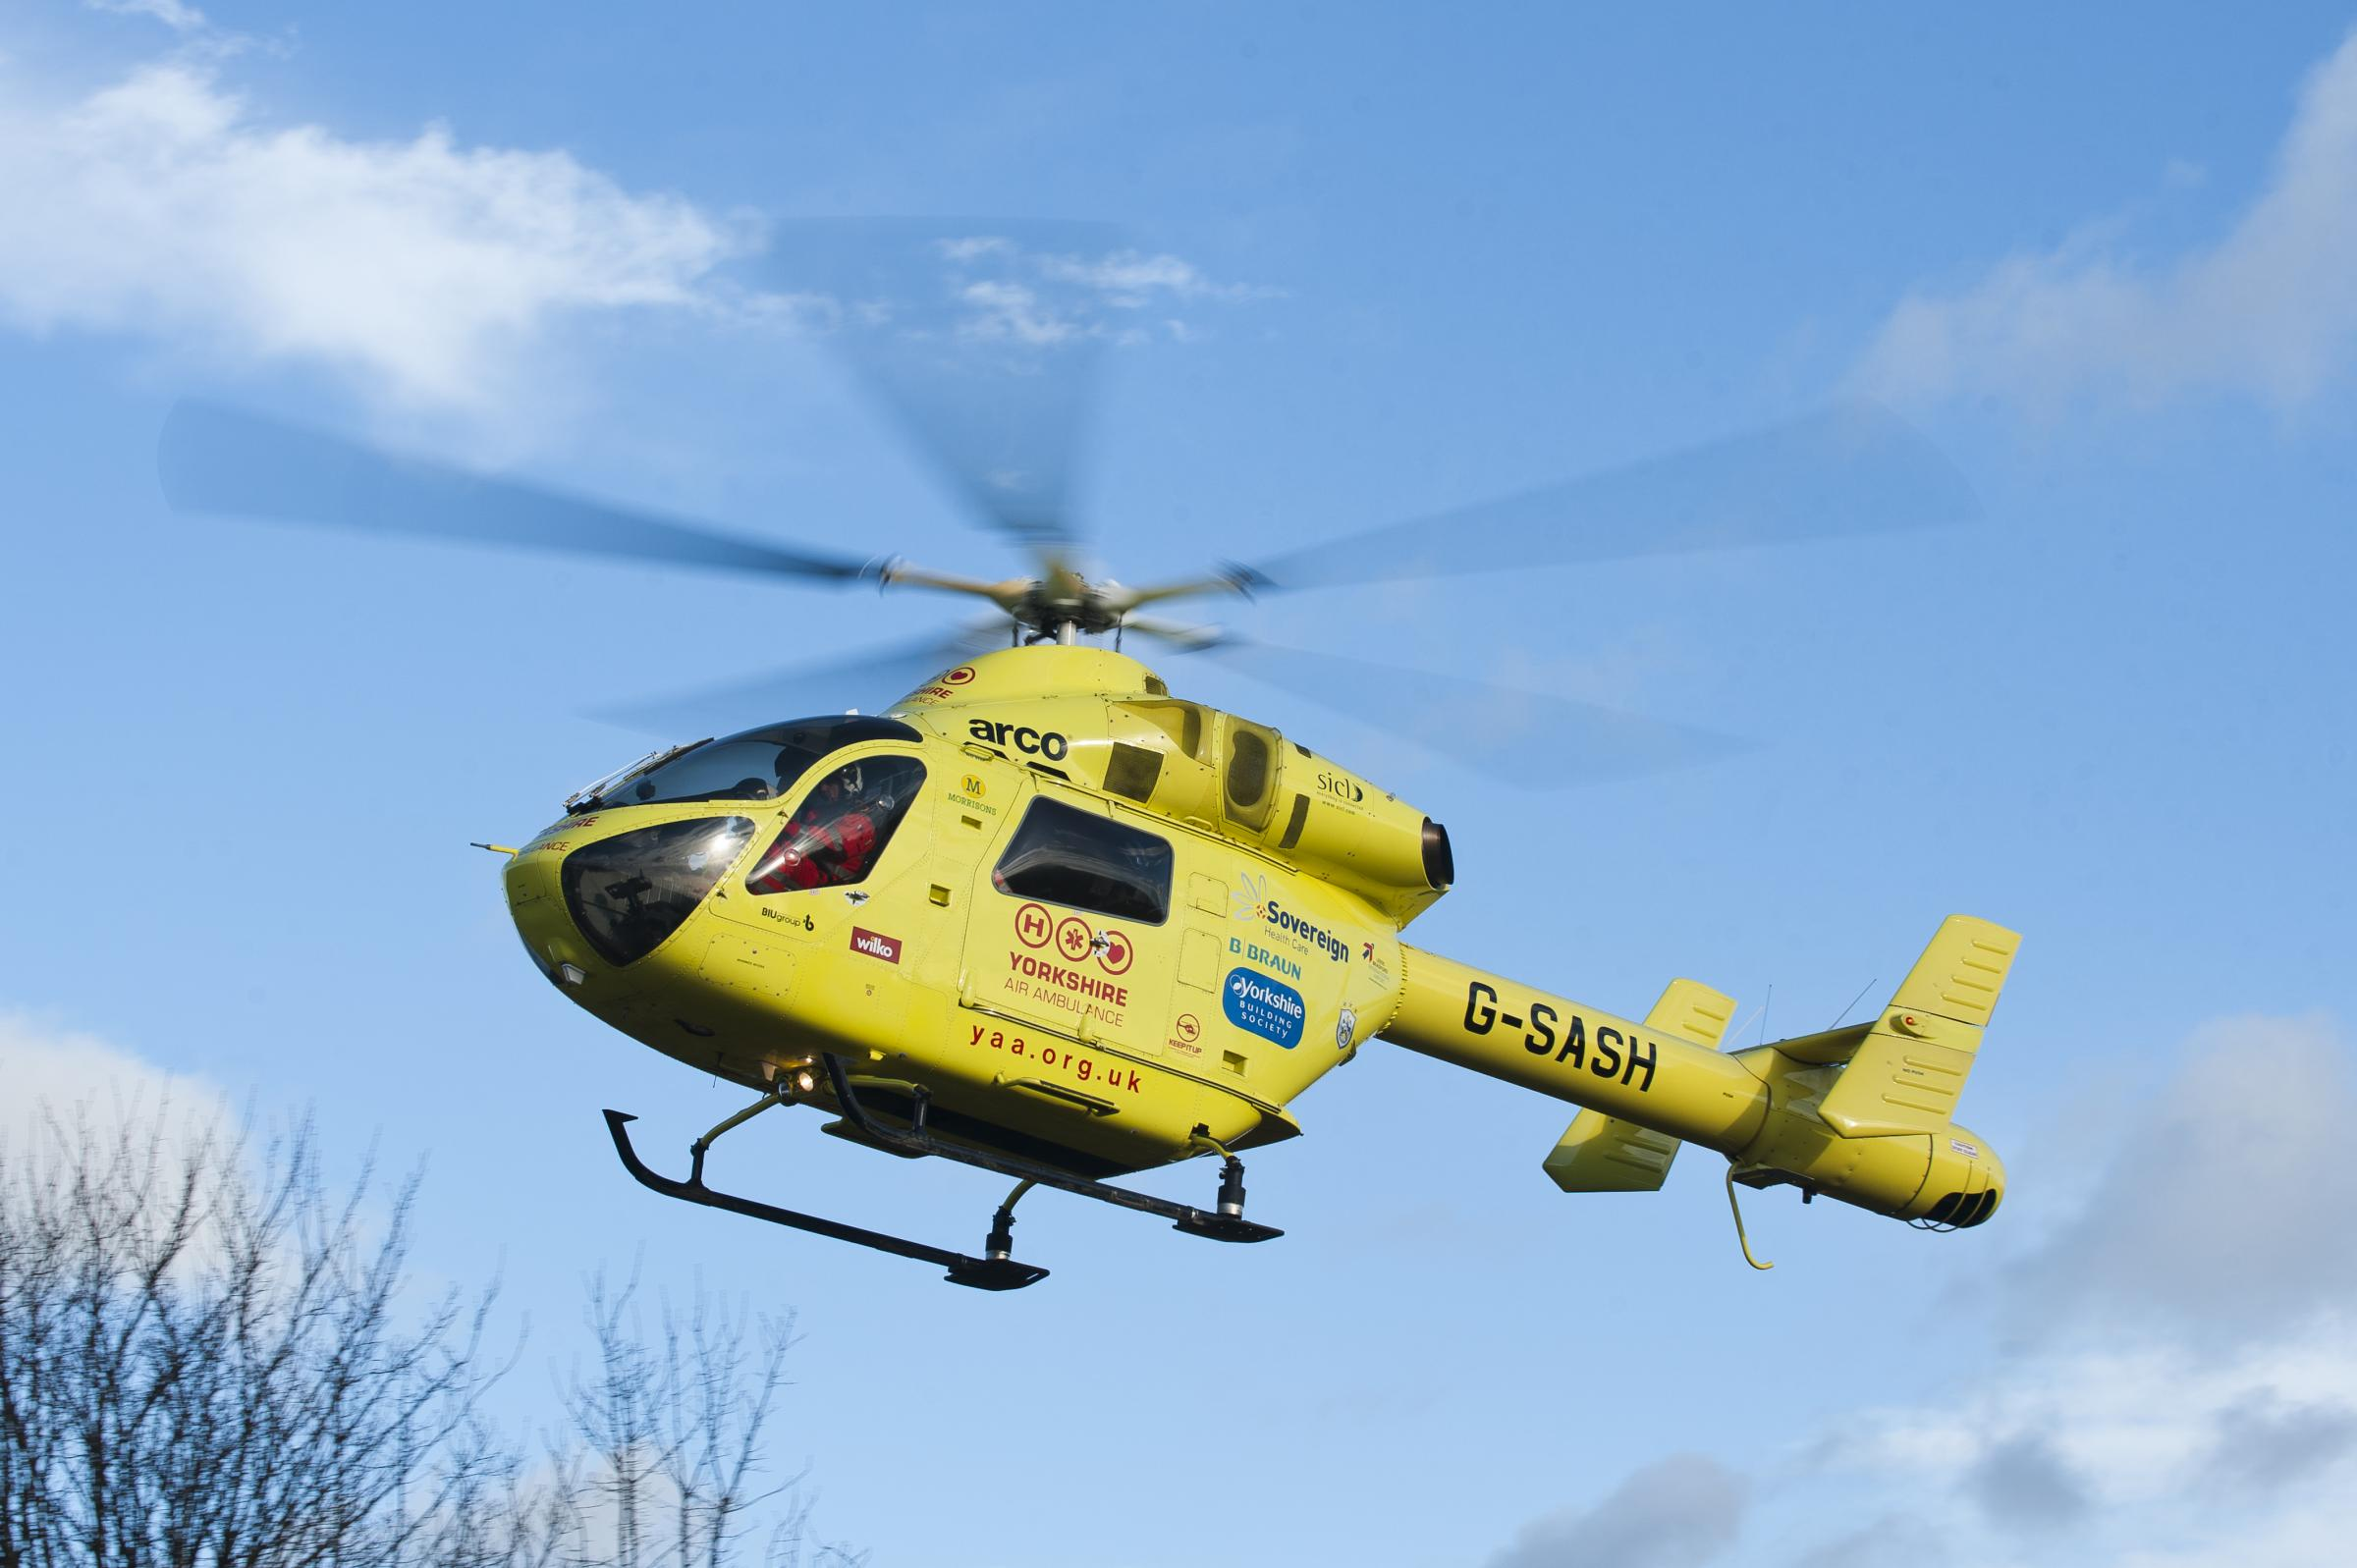 UPDATED: 80-year-old cyclist airlifted to hospital after crash with car in York